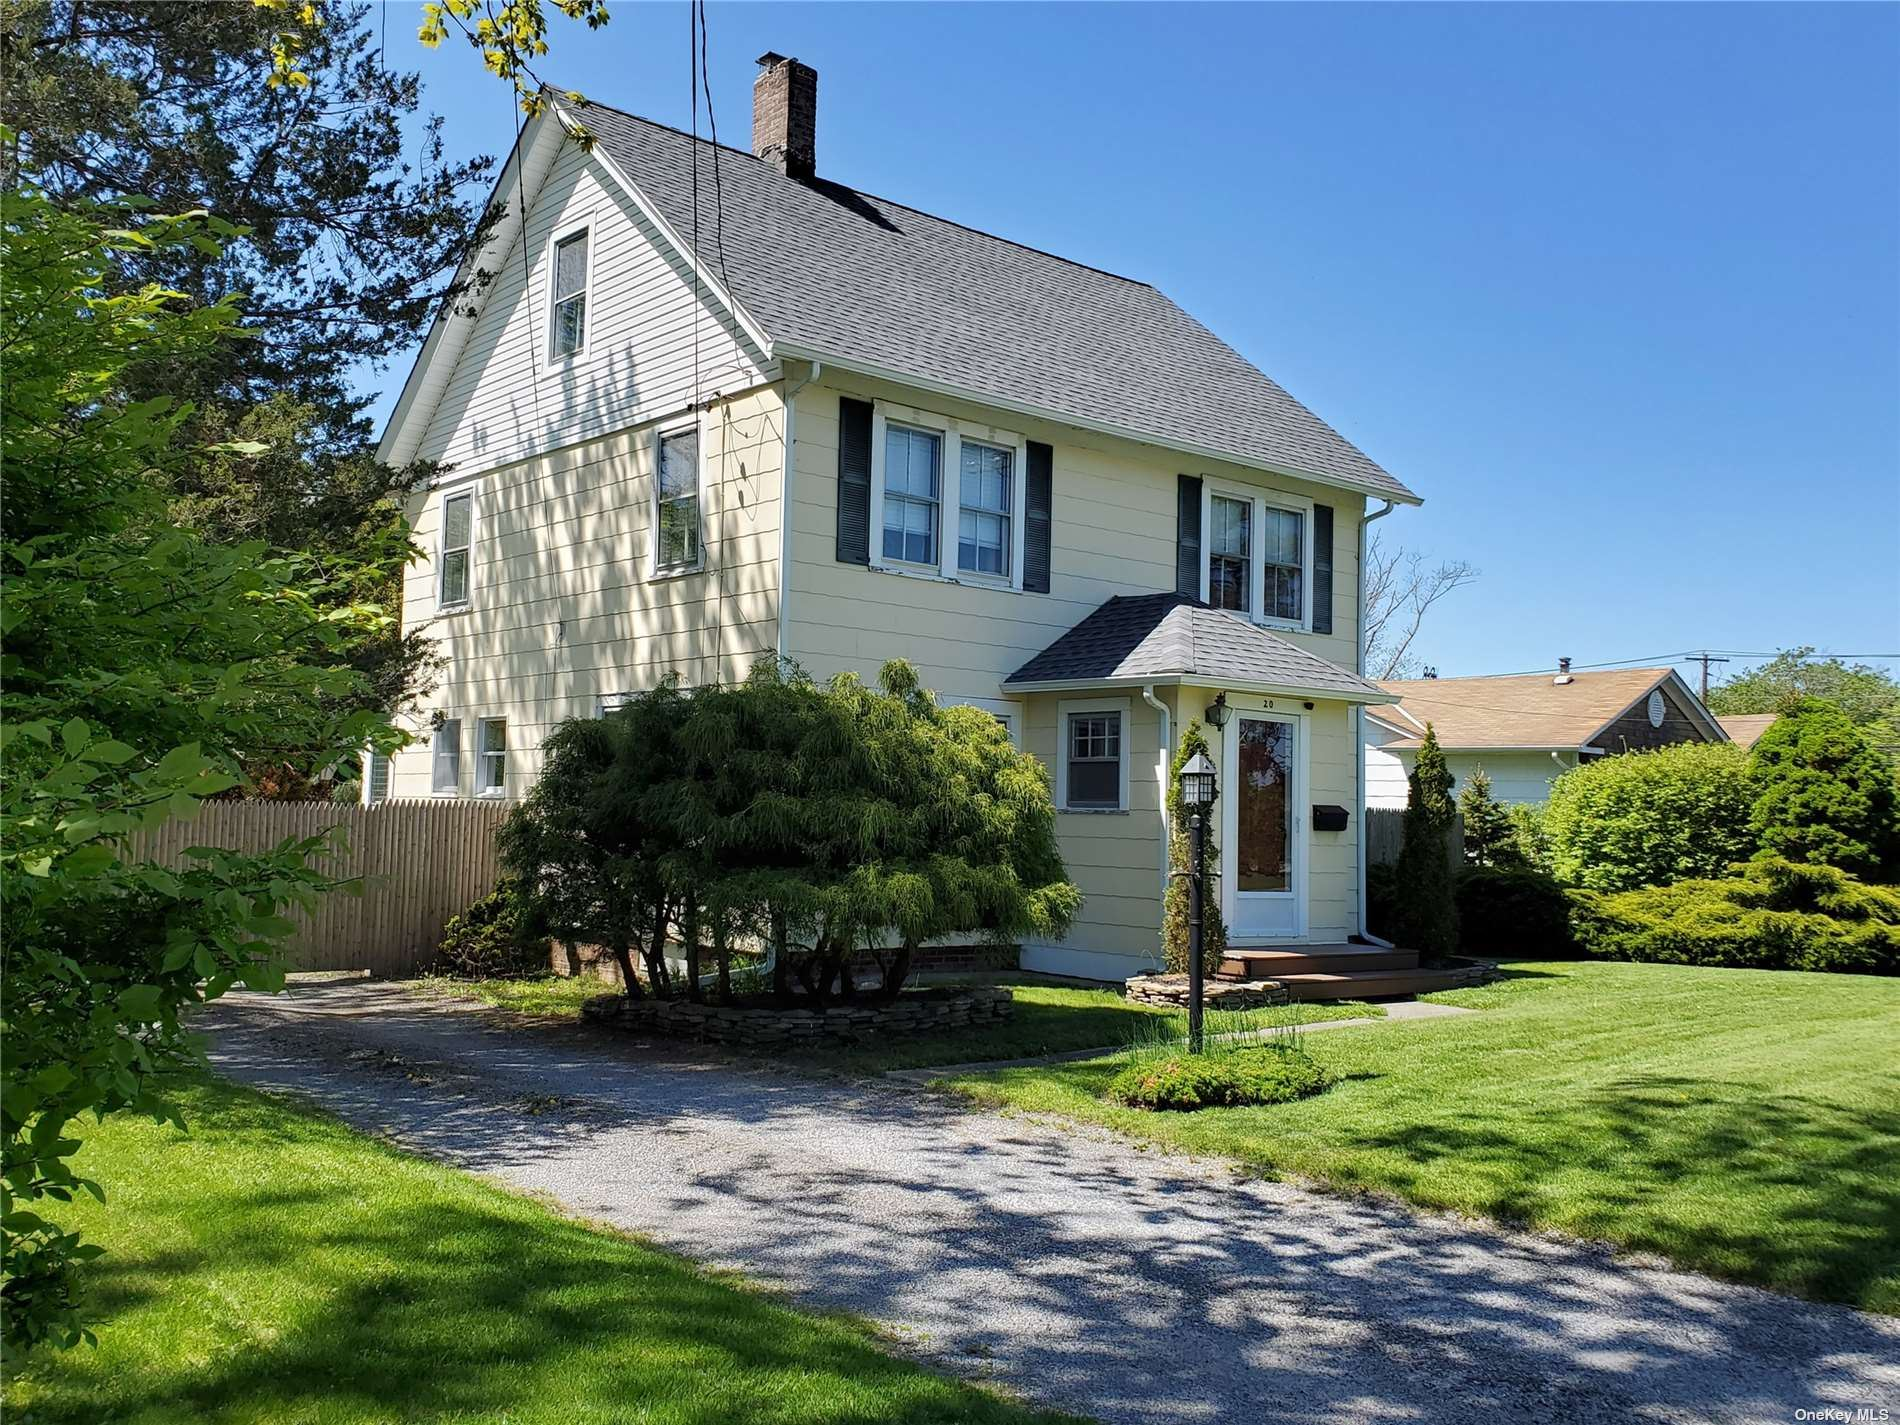 20 Durkee, East Patchogue, NY 11772 - MLS#: 3310529